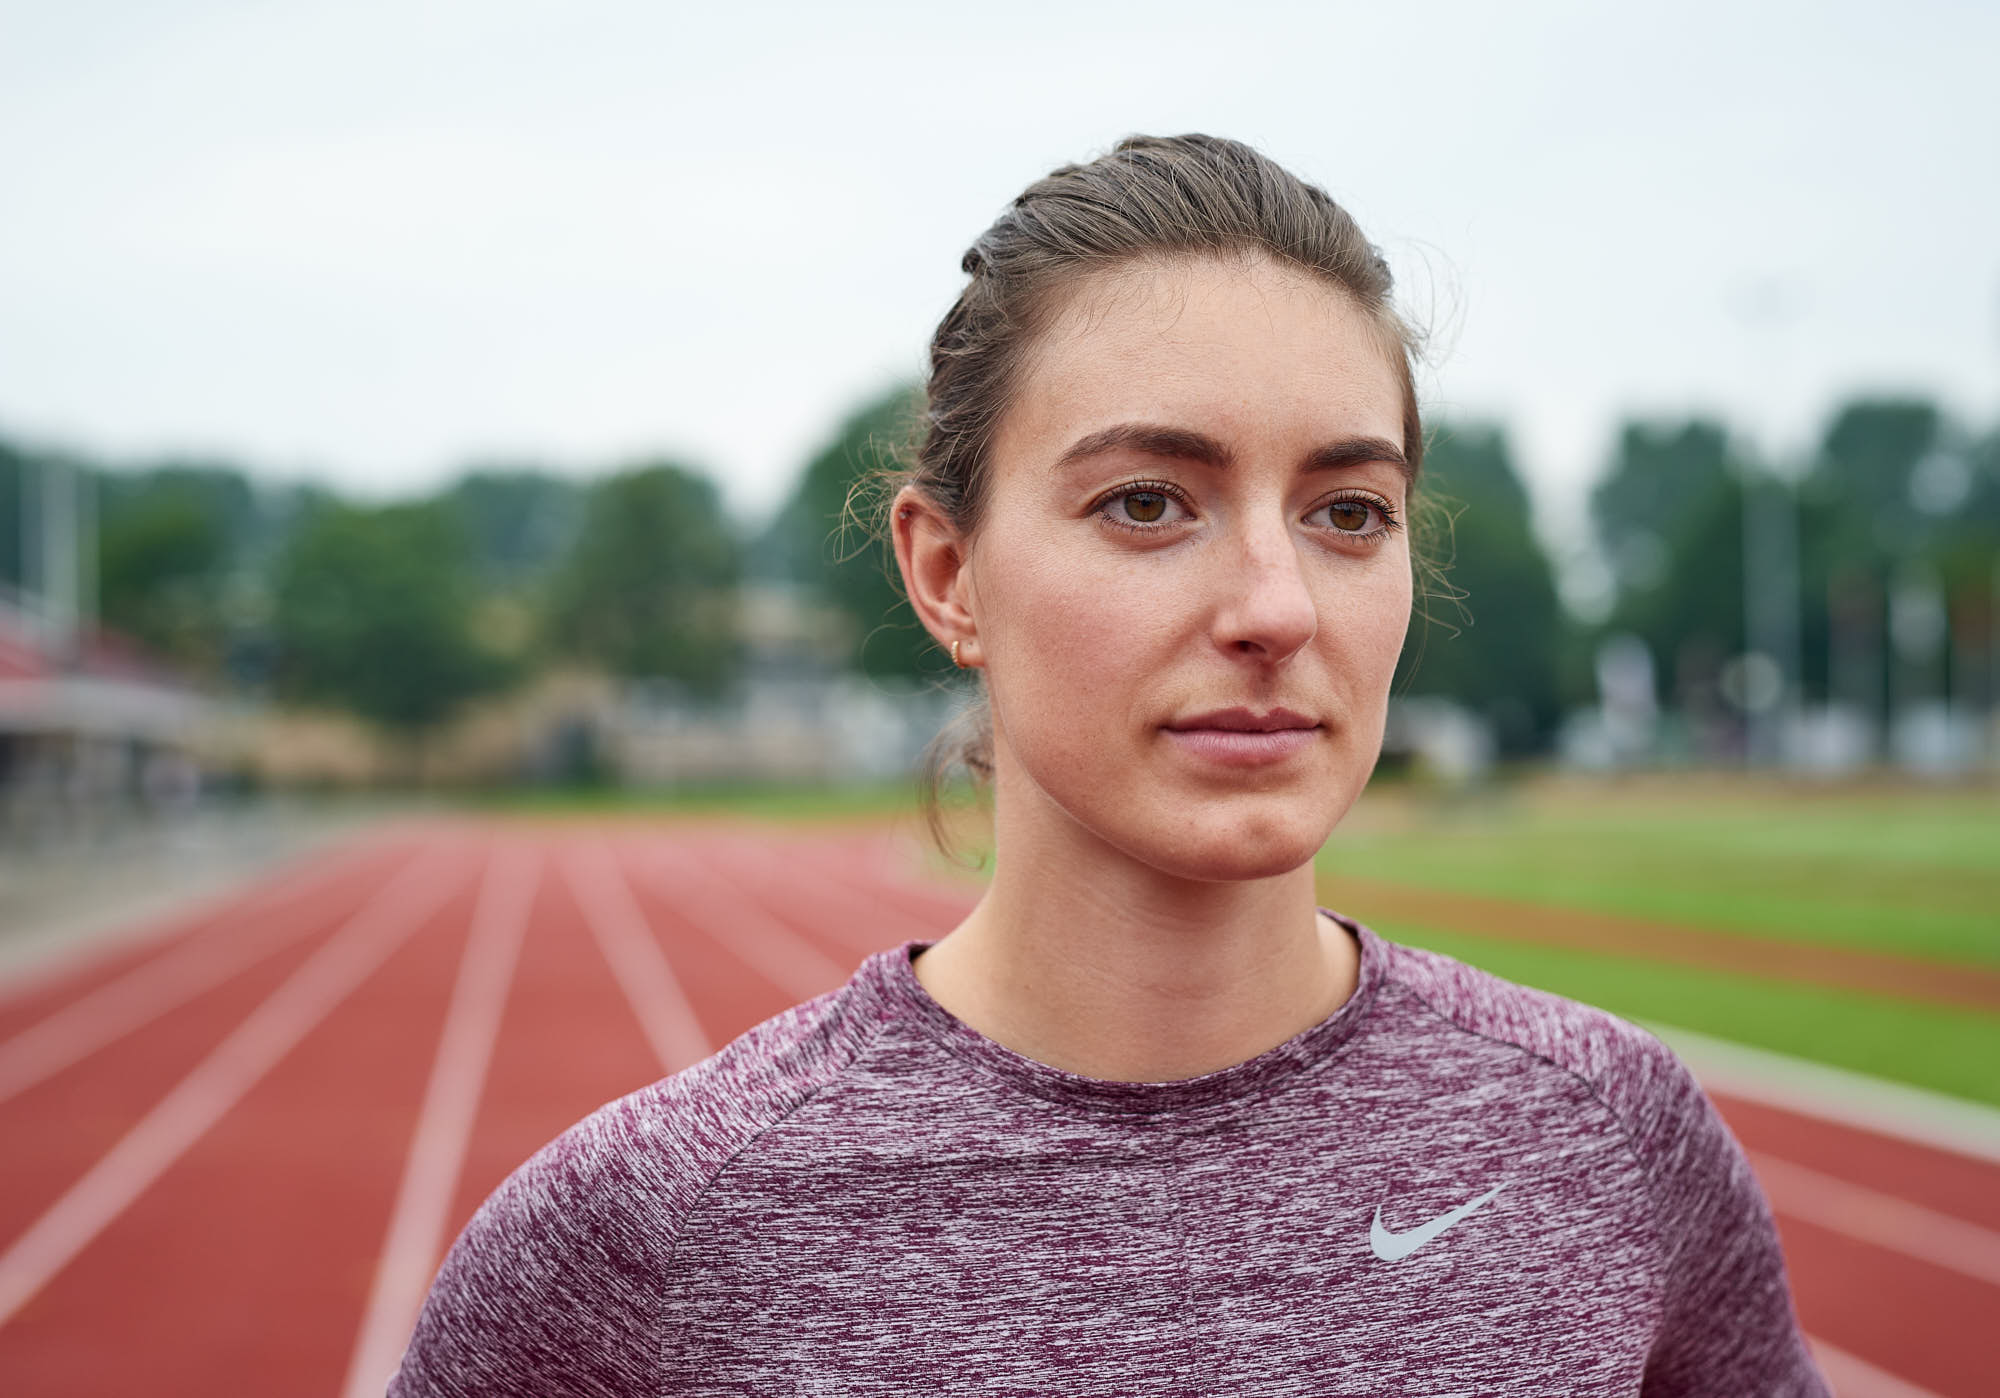 Portrait of Bianca Baak, a top hurdles athlete from The Netherlands